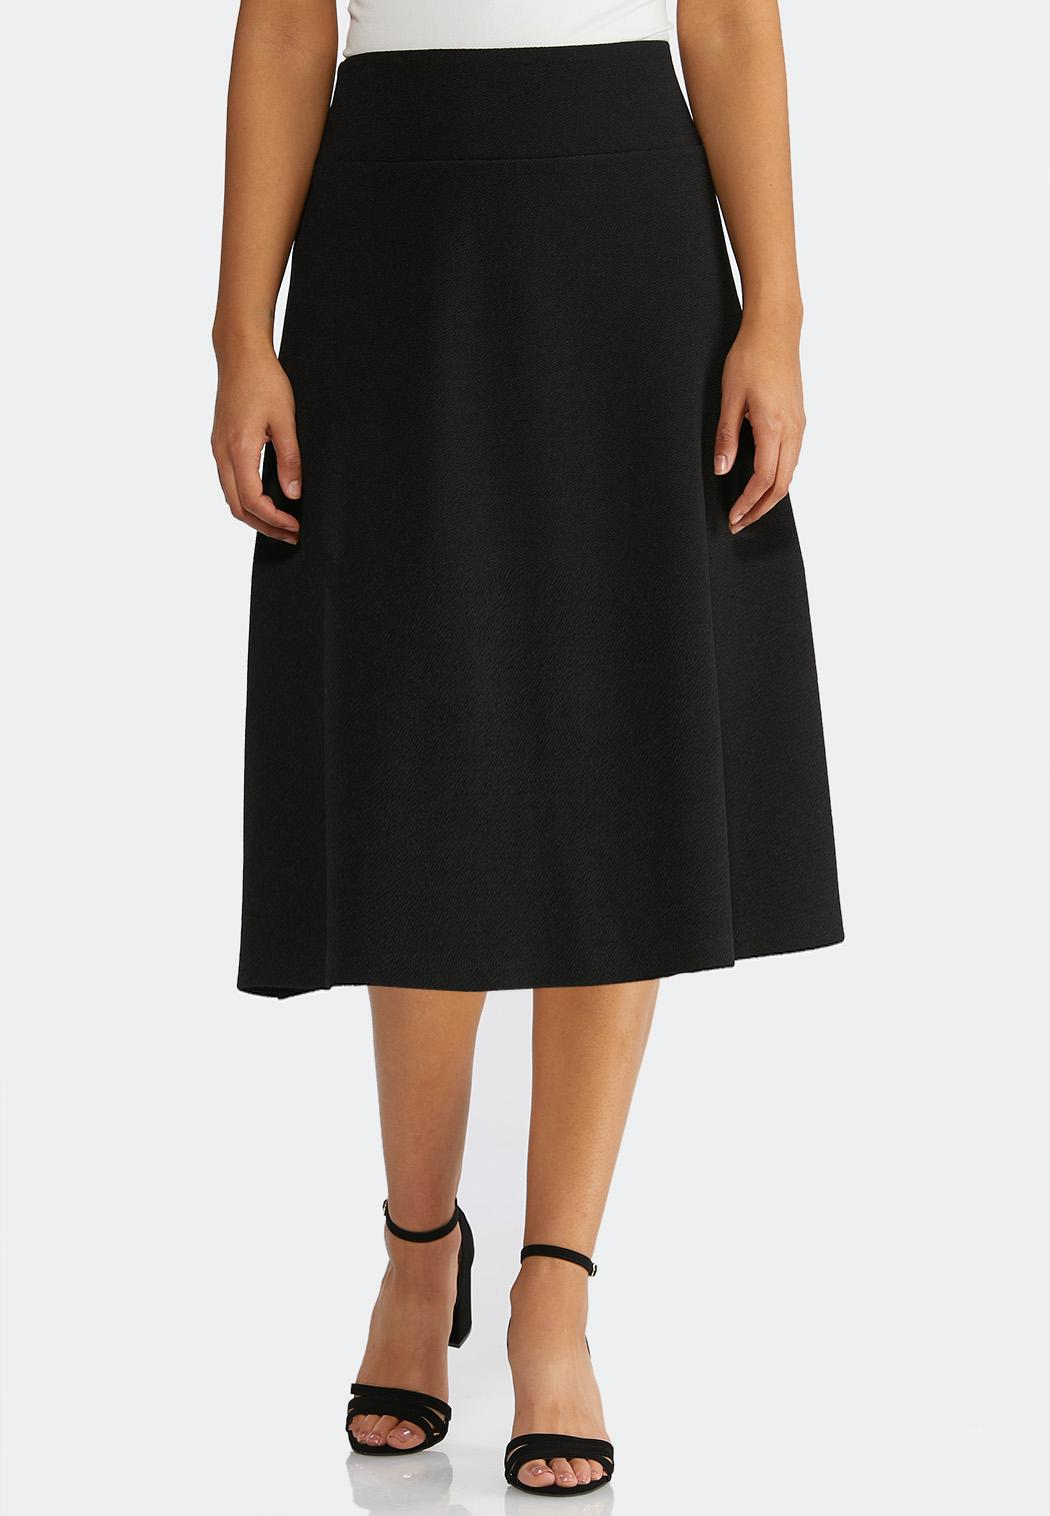 Sears Plus Size Dresses And Skirts